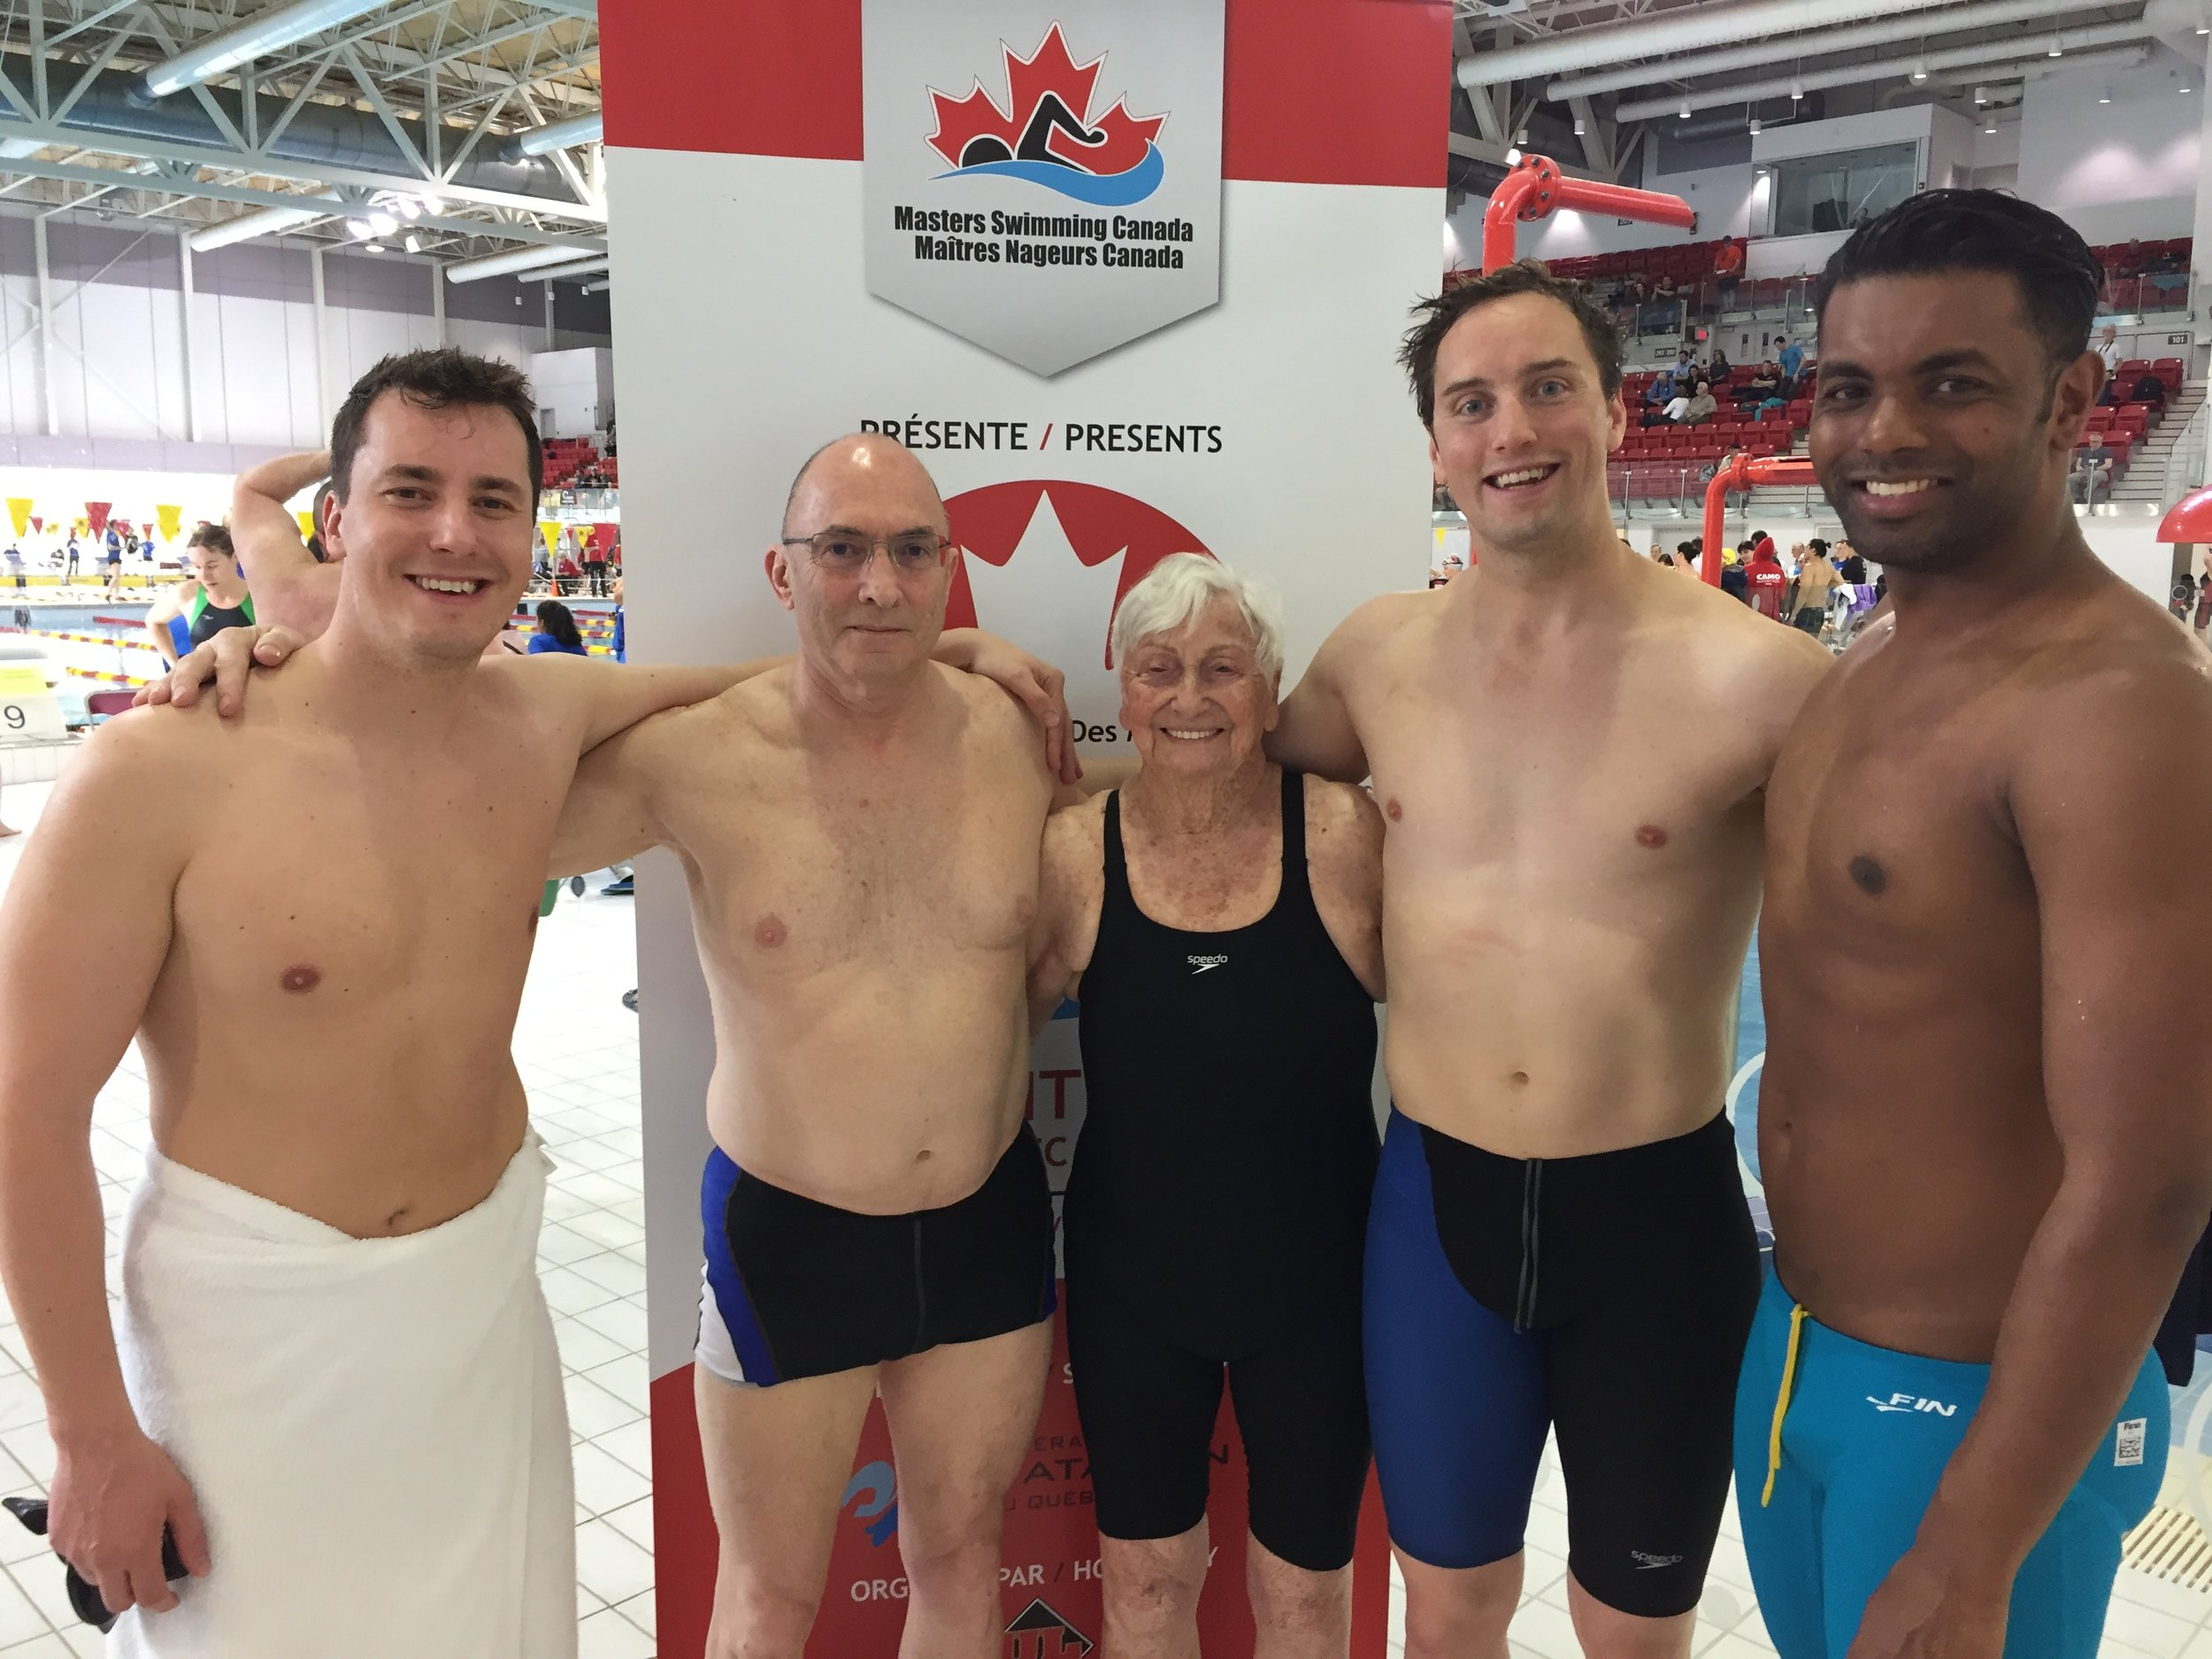 EOMAC at Masters Swimming Canada Nationals in Quebec City, 2016